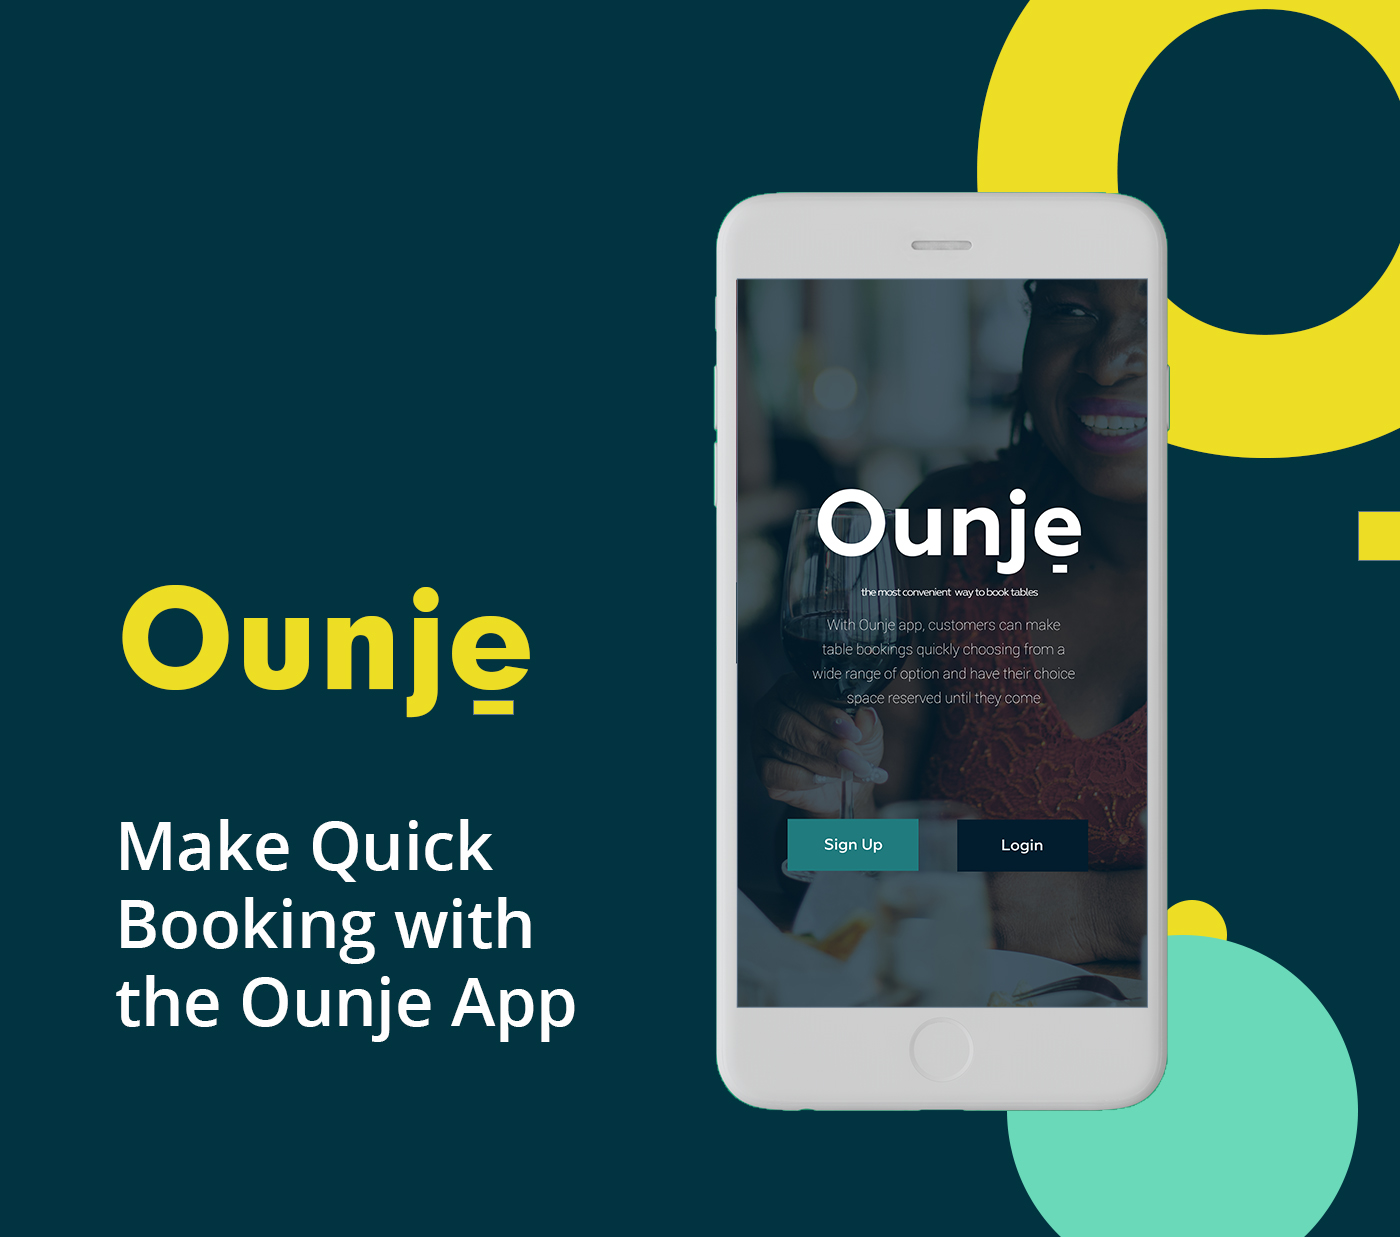 User-centered inteface - Ounje app - Vibratiquehub